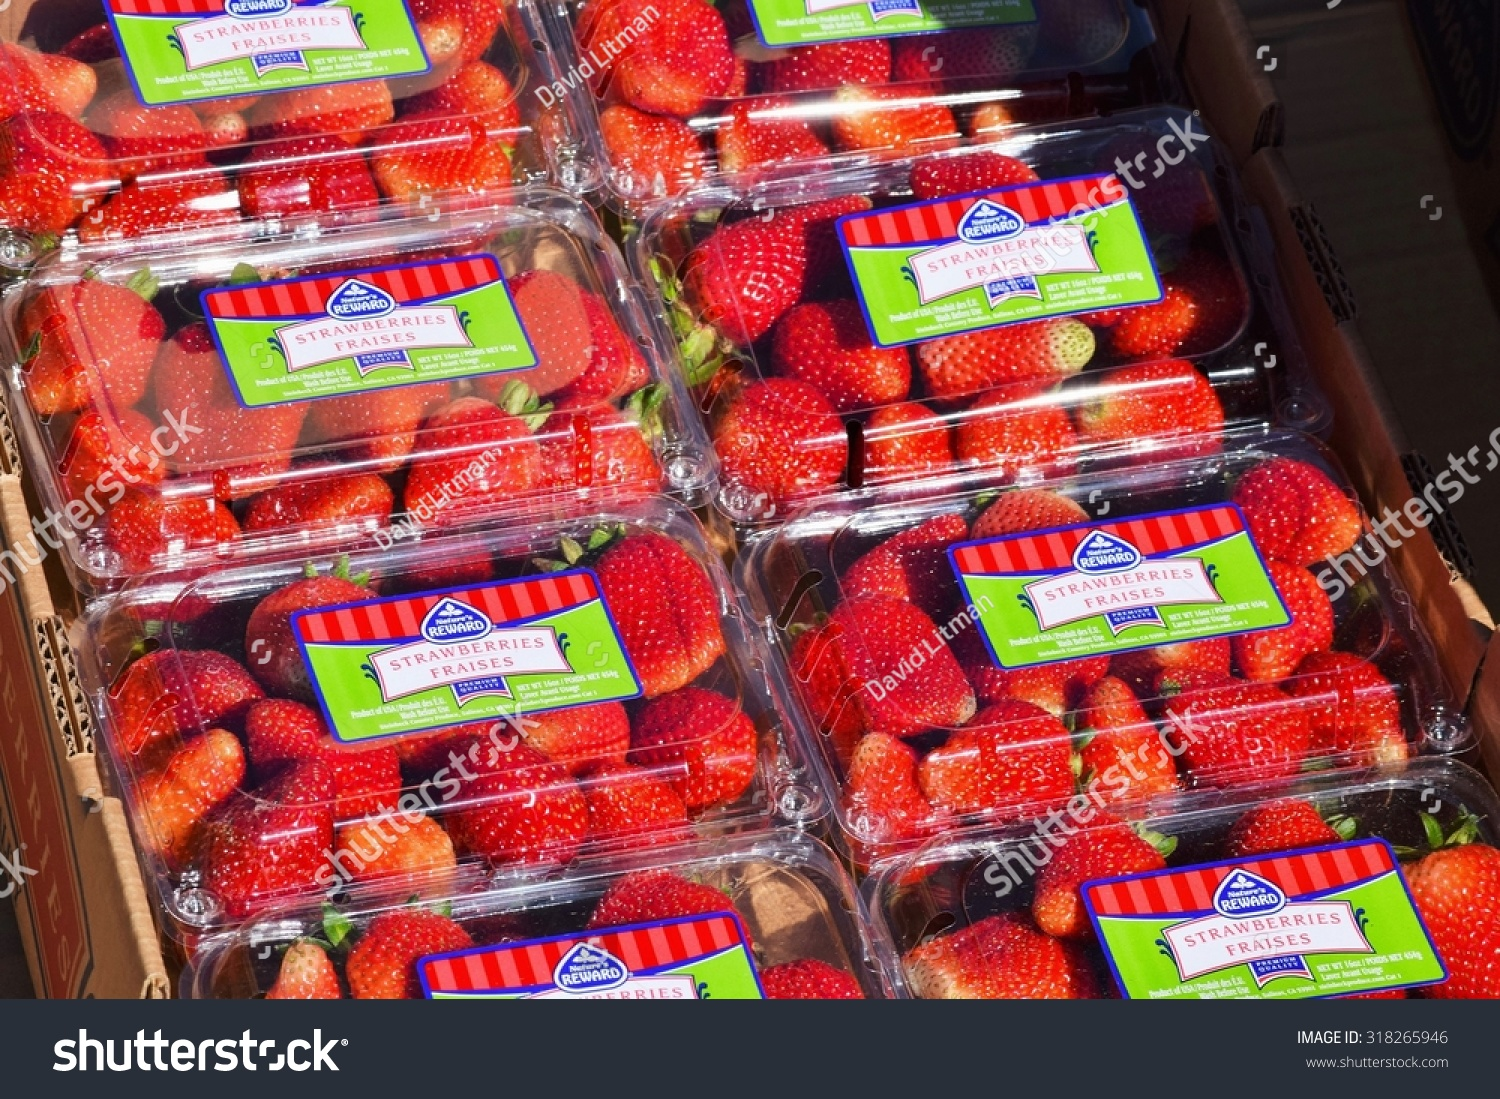 Salinas, California, USA - June 19, 2015: Freshly picked strawberries are packaged directly in the fields, ready for shipping, in the Salinas Valley of central California.